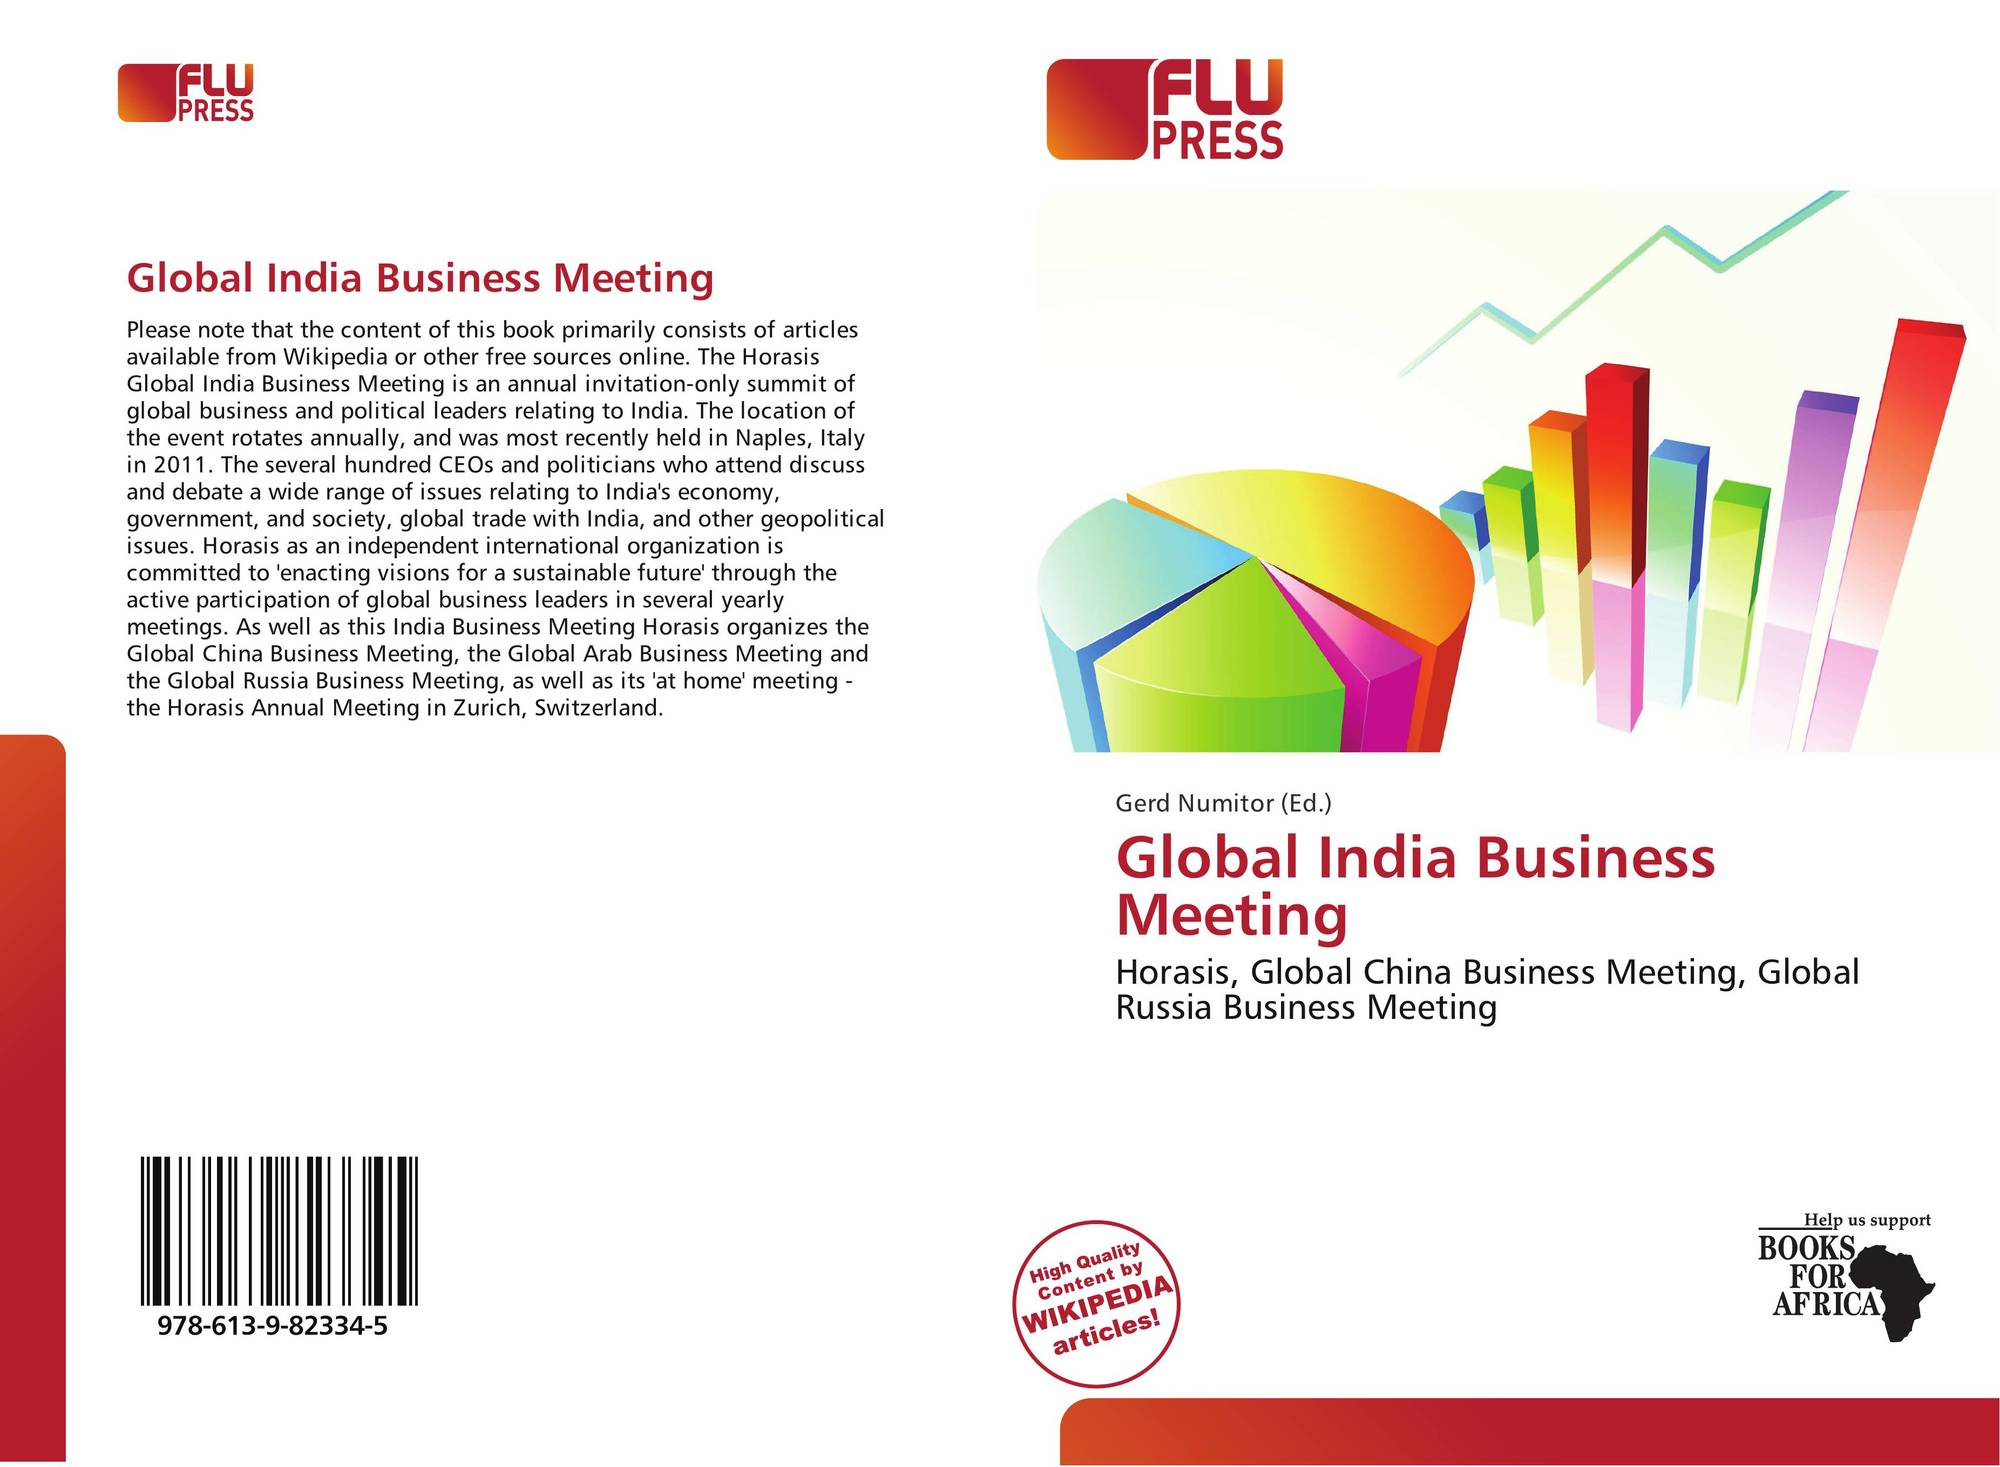 Global India Business Meeting, 978-613-9-82334-5, 613982334X